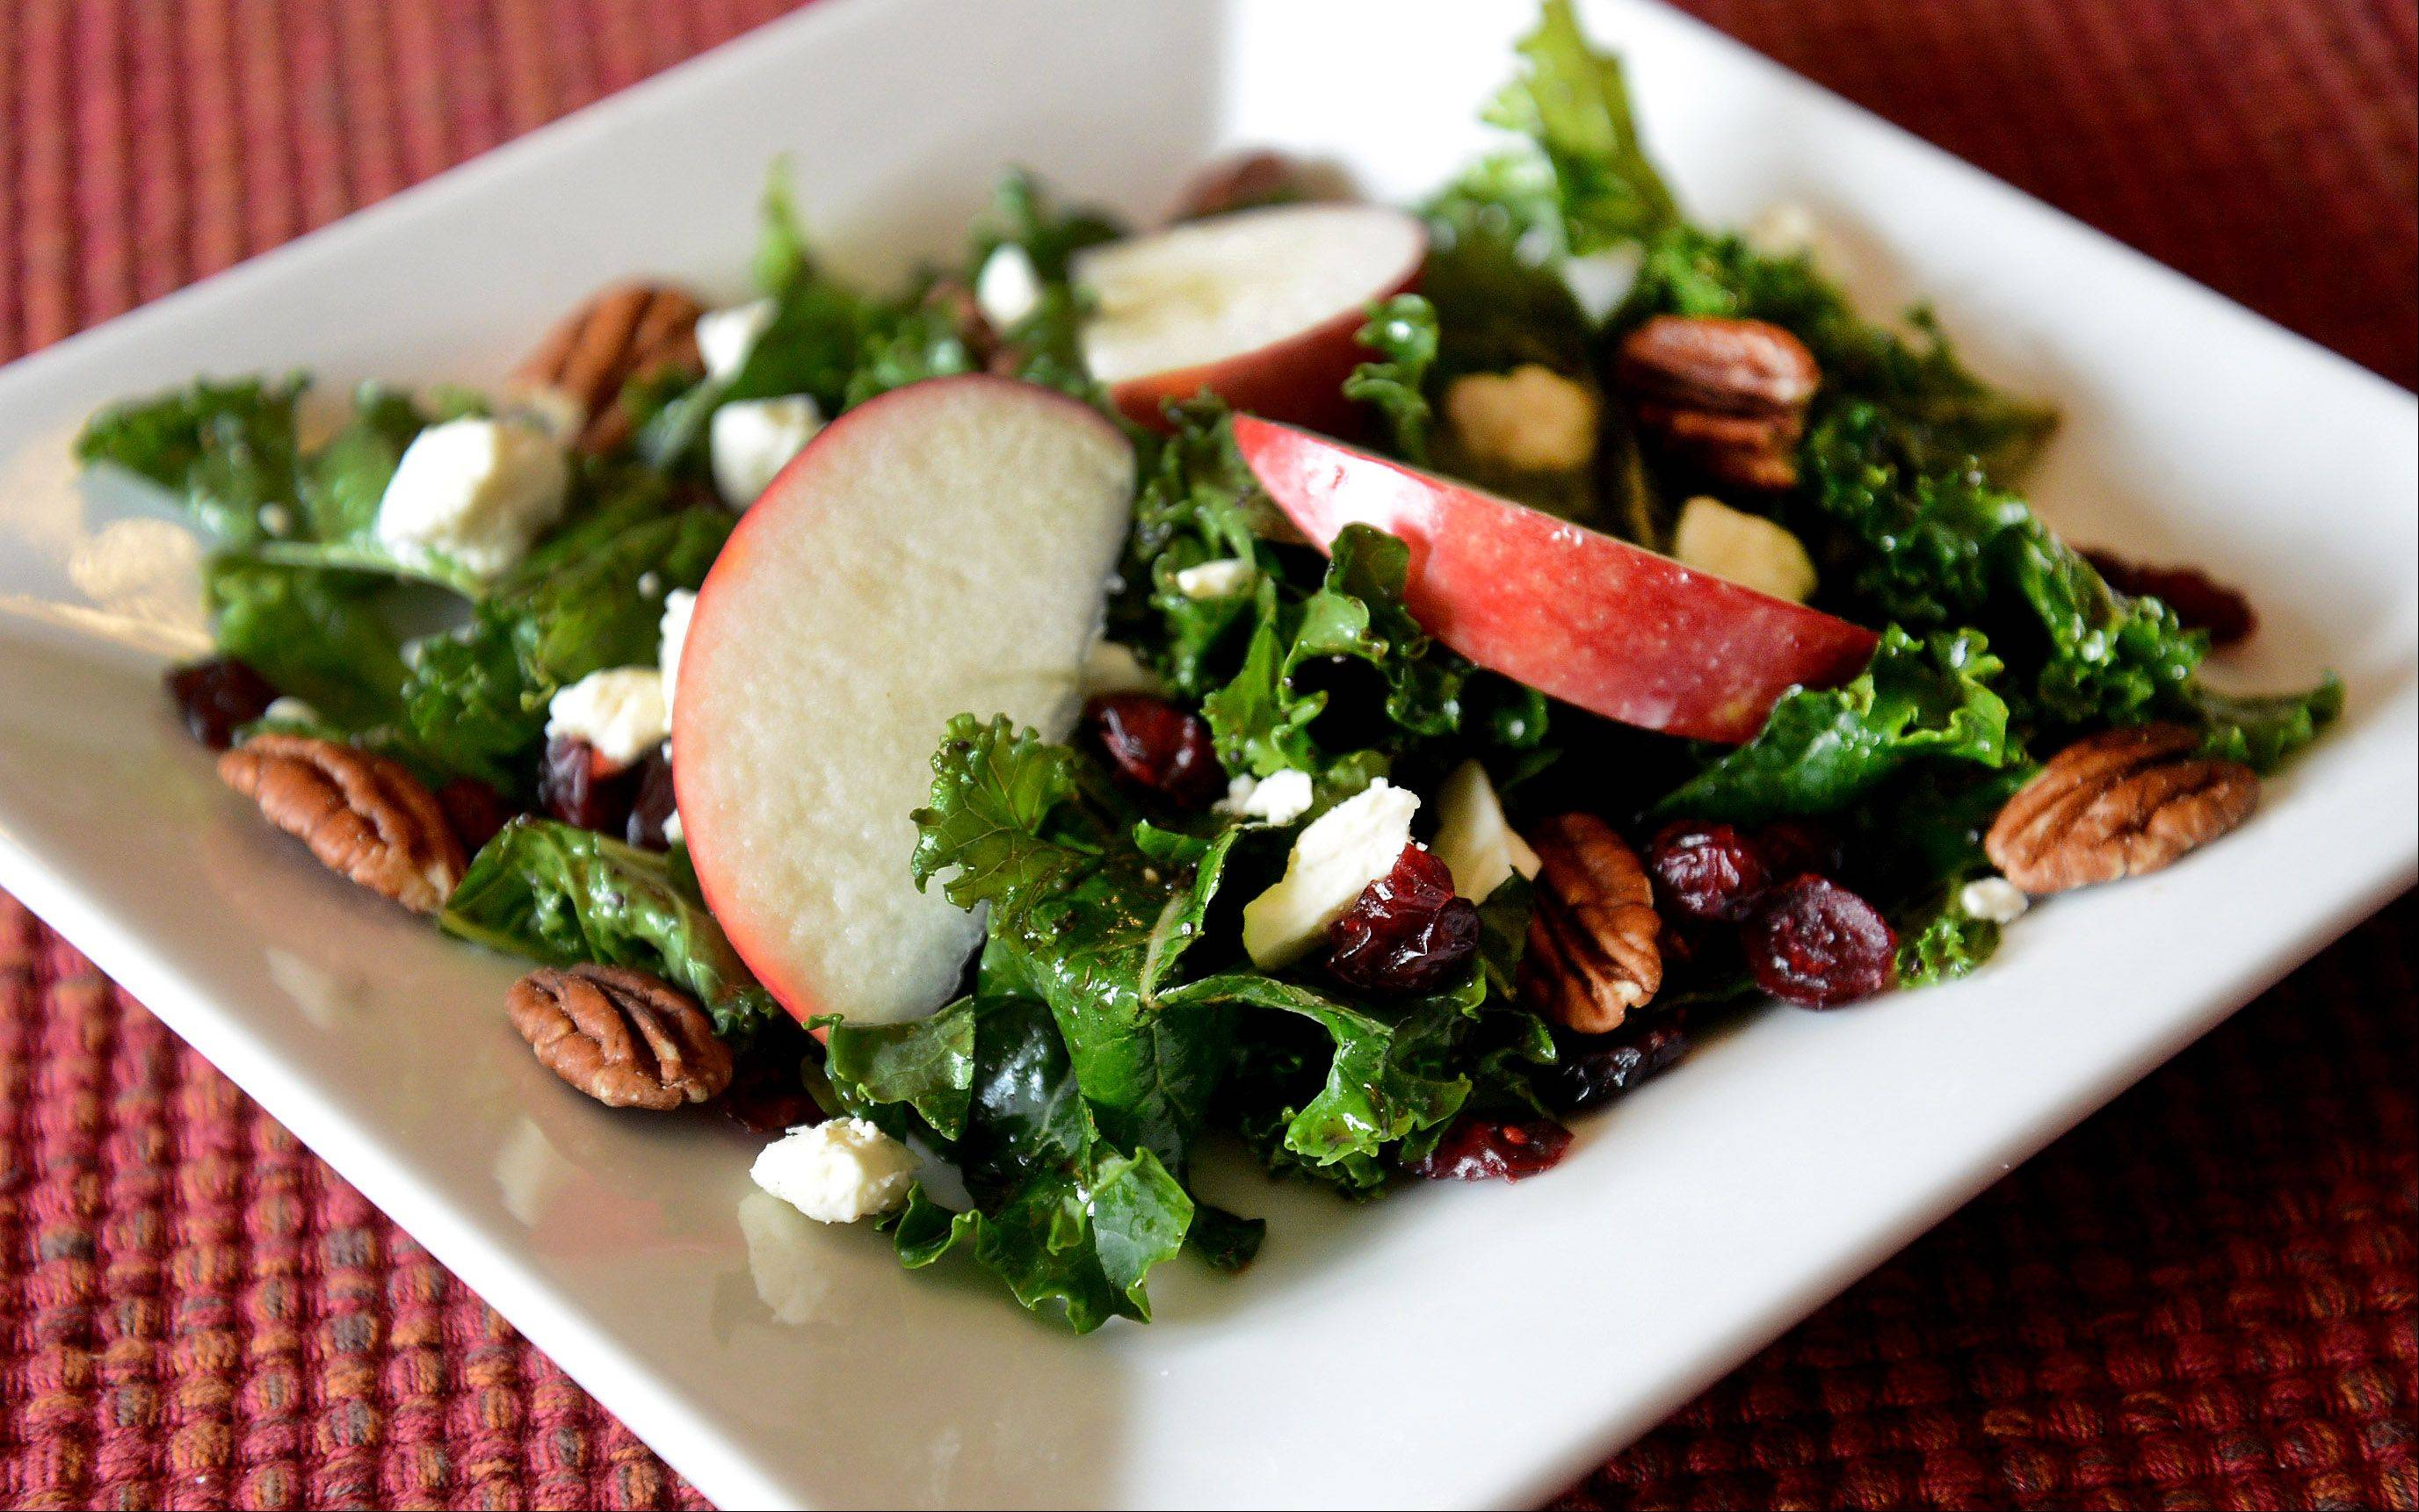 Joe Moninski's apple- and cranberry-topped kale salad is festive for holiday entertaining.